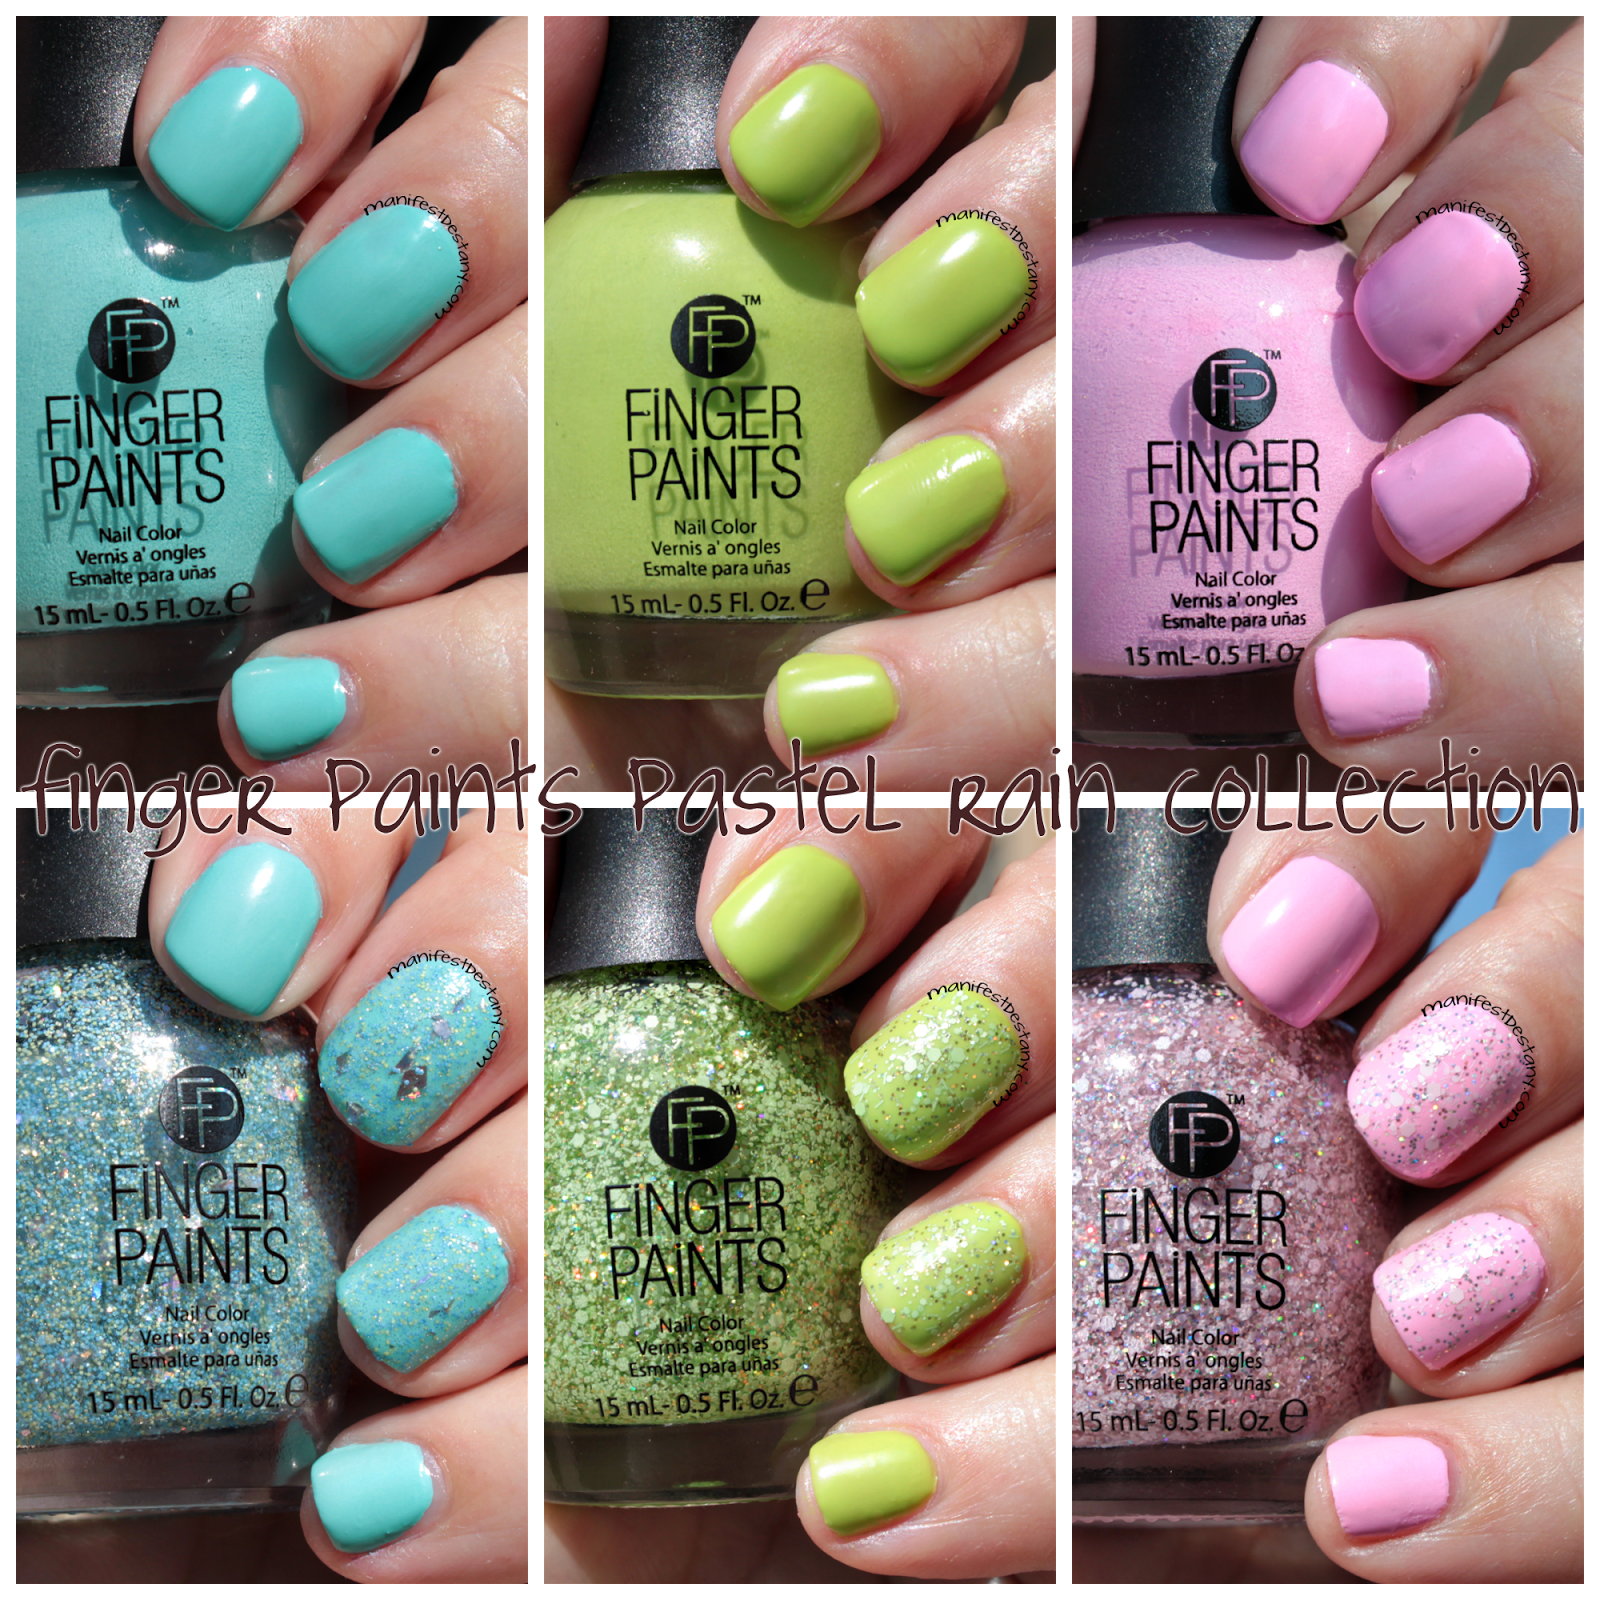 Finger Paints Pastel Rain Collection swatches+review | My Nails in ...